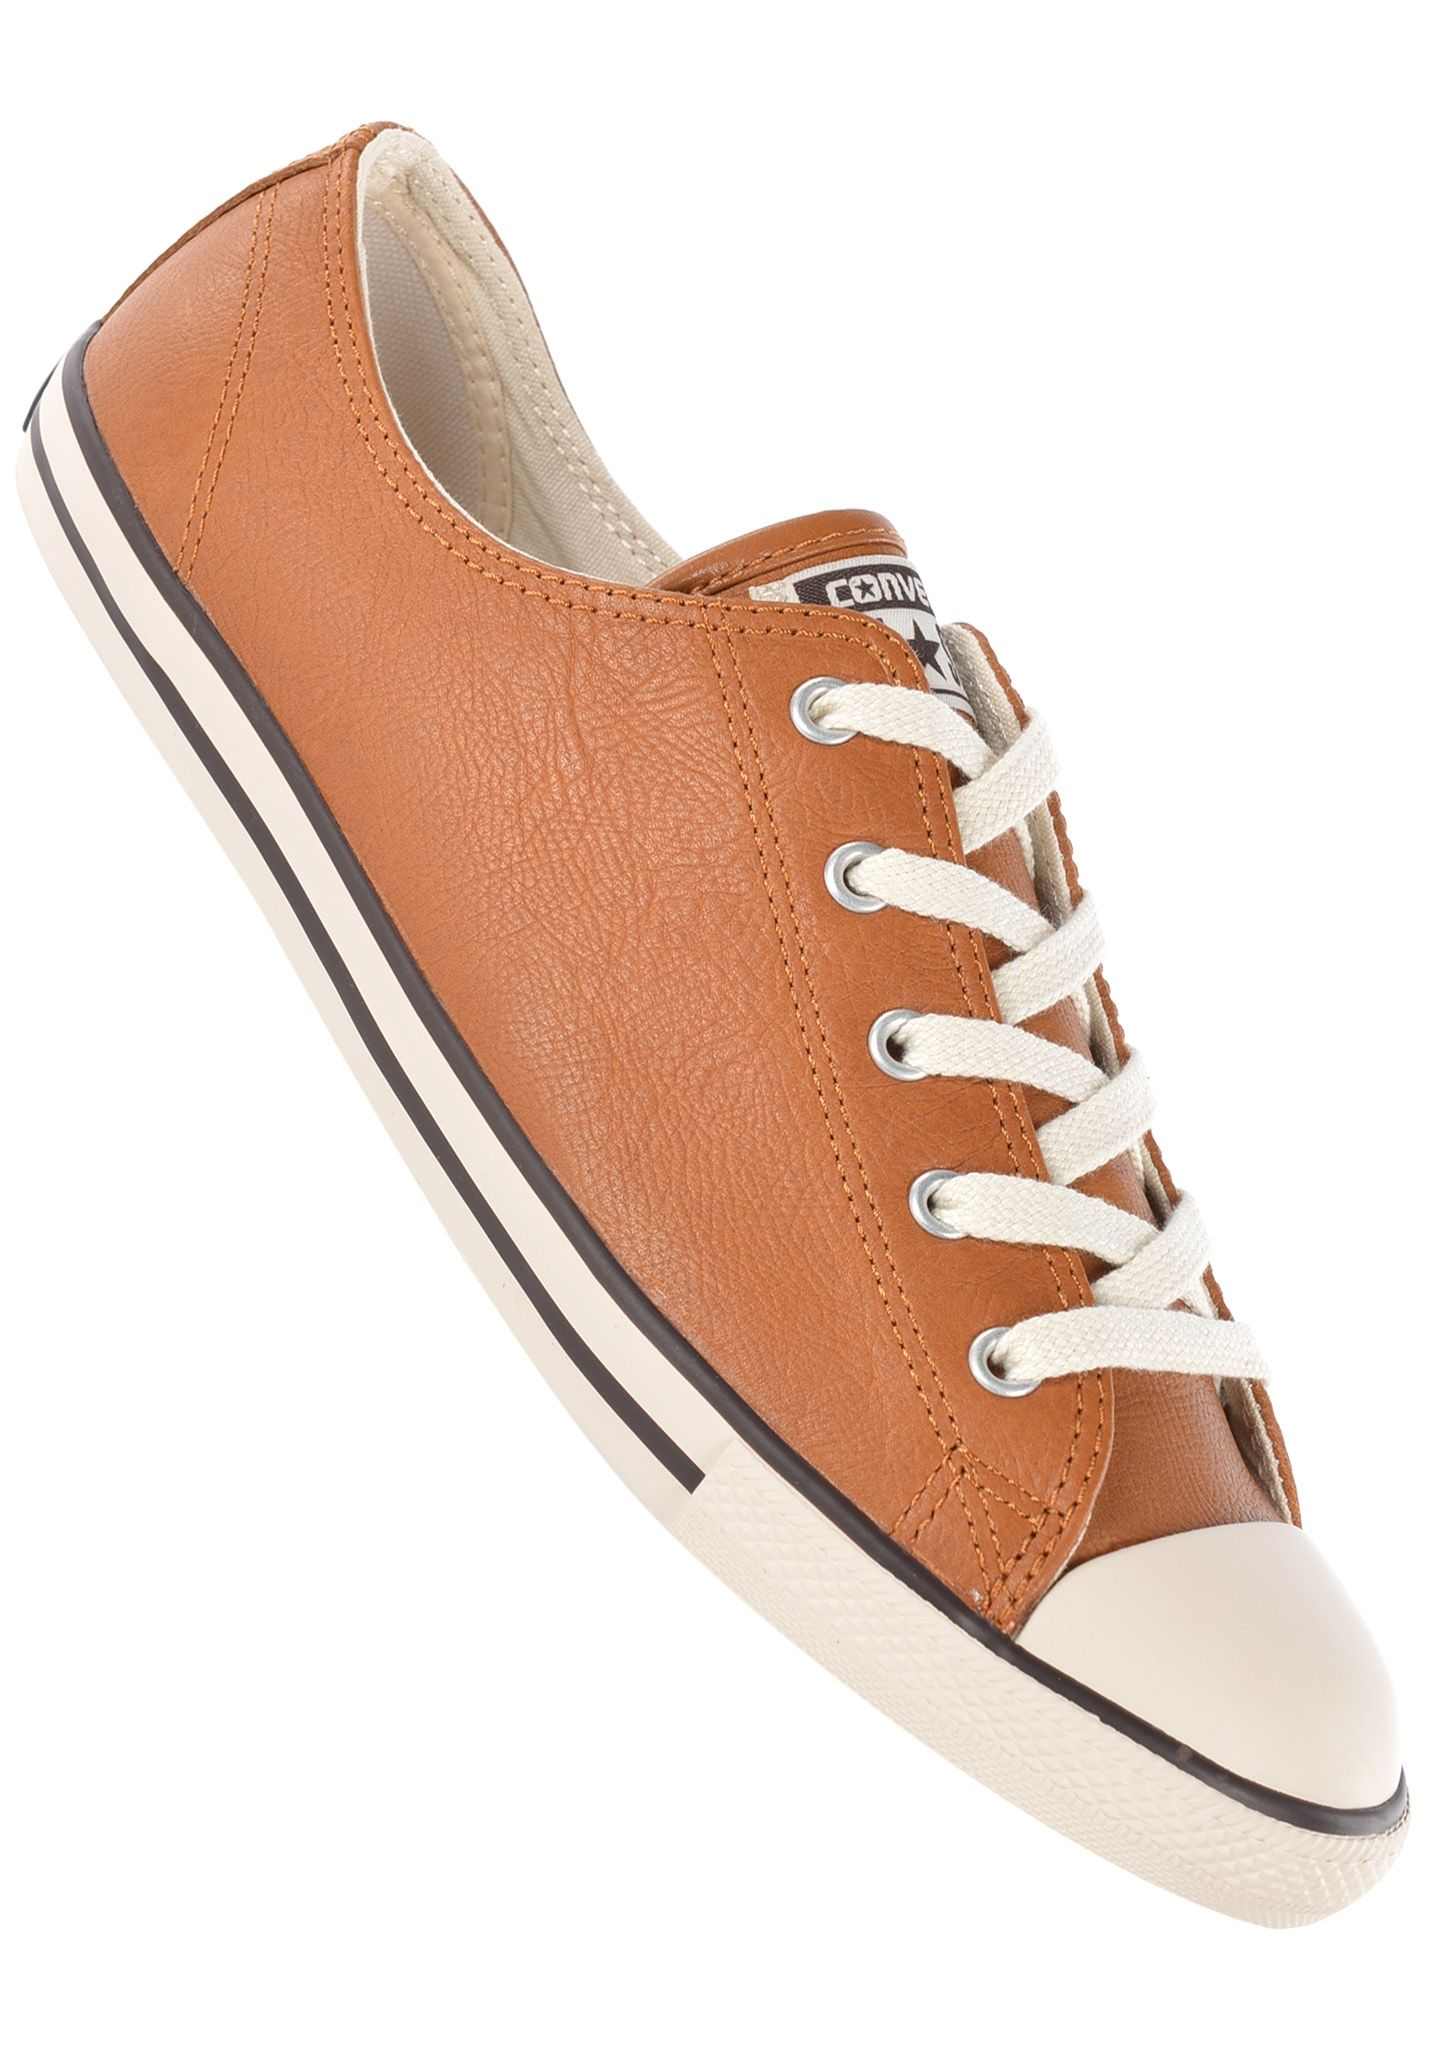 7b313933289 Converse Chuck Taylor All Star Dainty Ox - Sneakers for Women - Brown -  Planet Sports